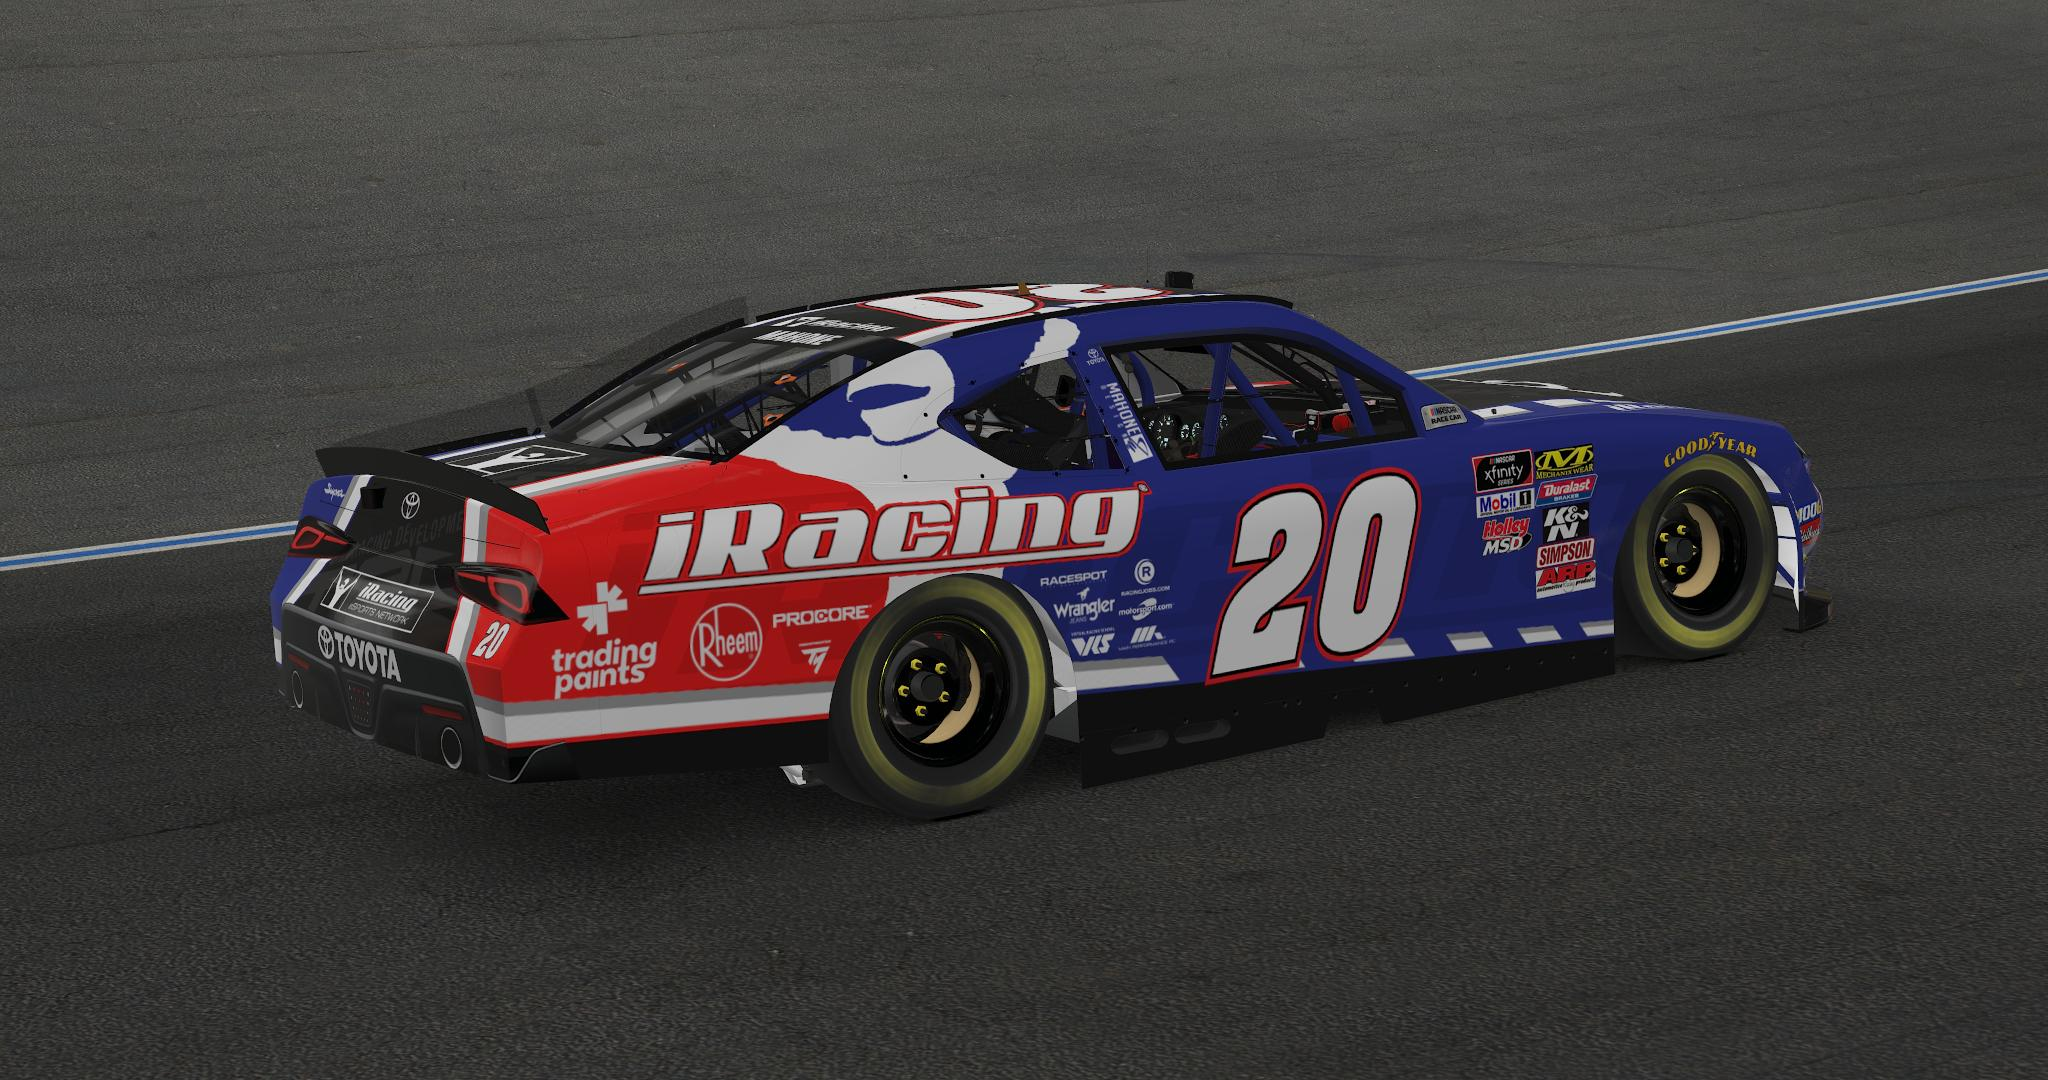 Preview of iRacing Supra (Christopher Bell Helmet version) by Anthony Mahone